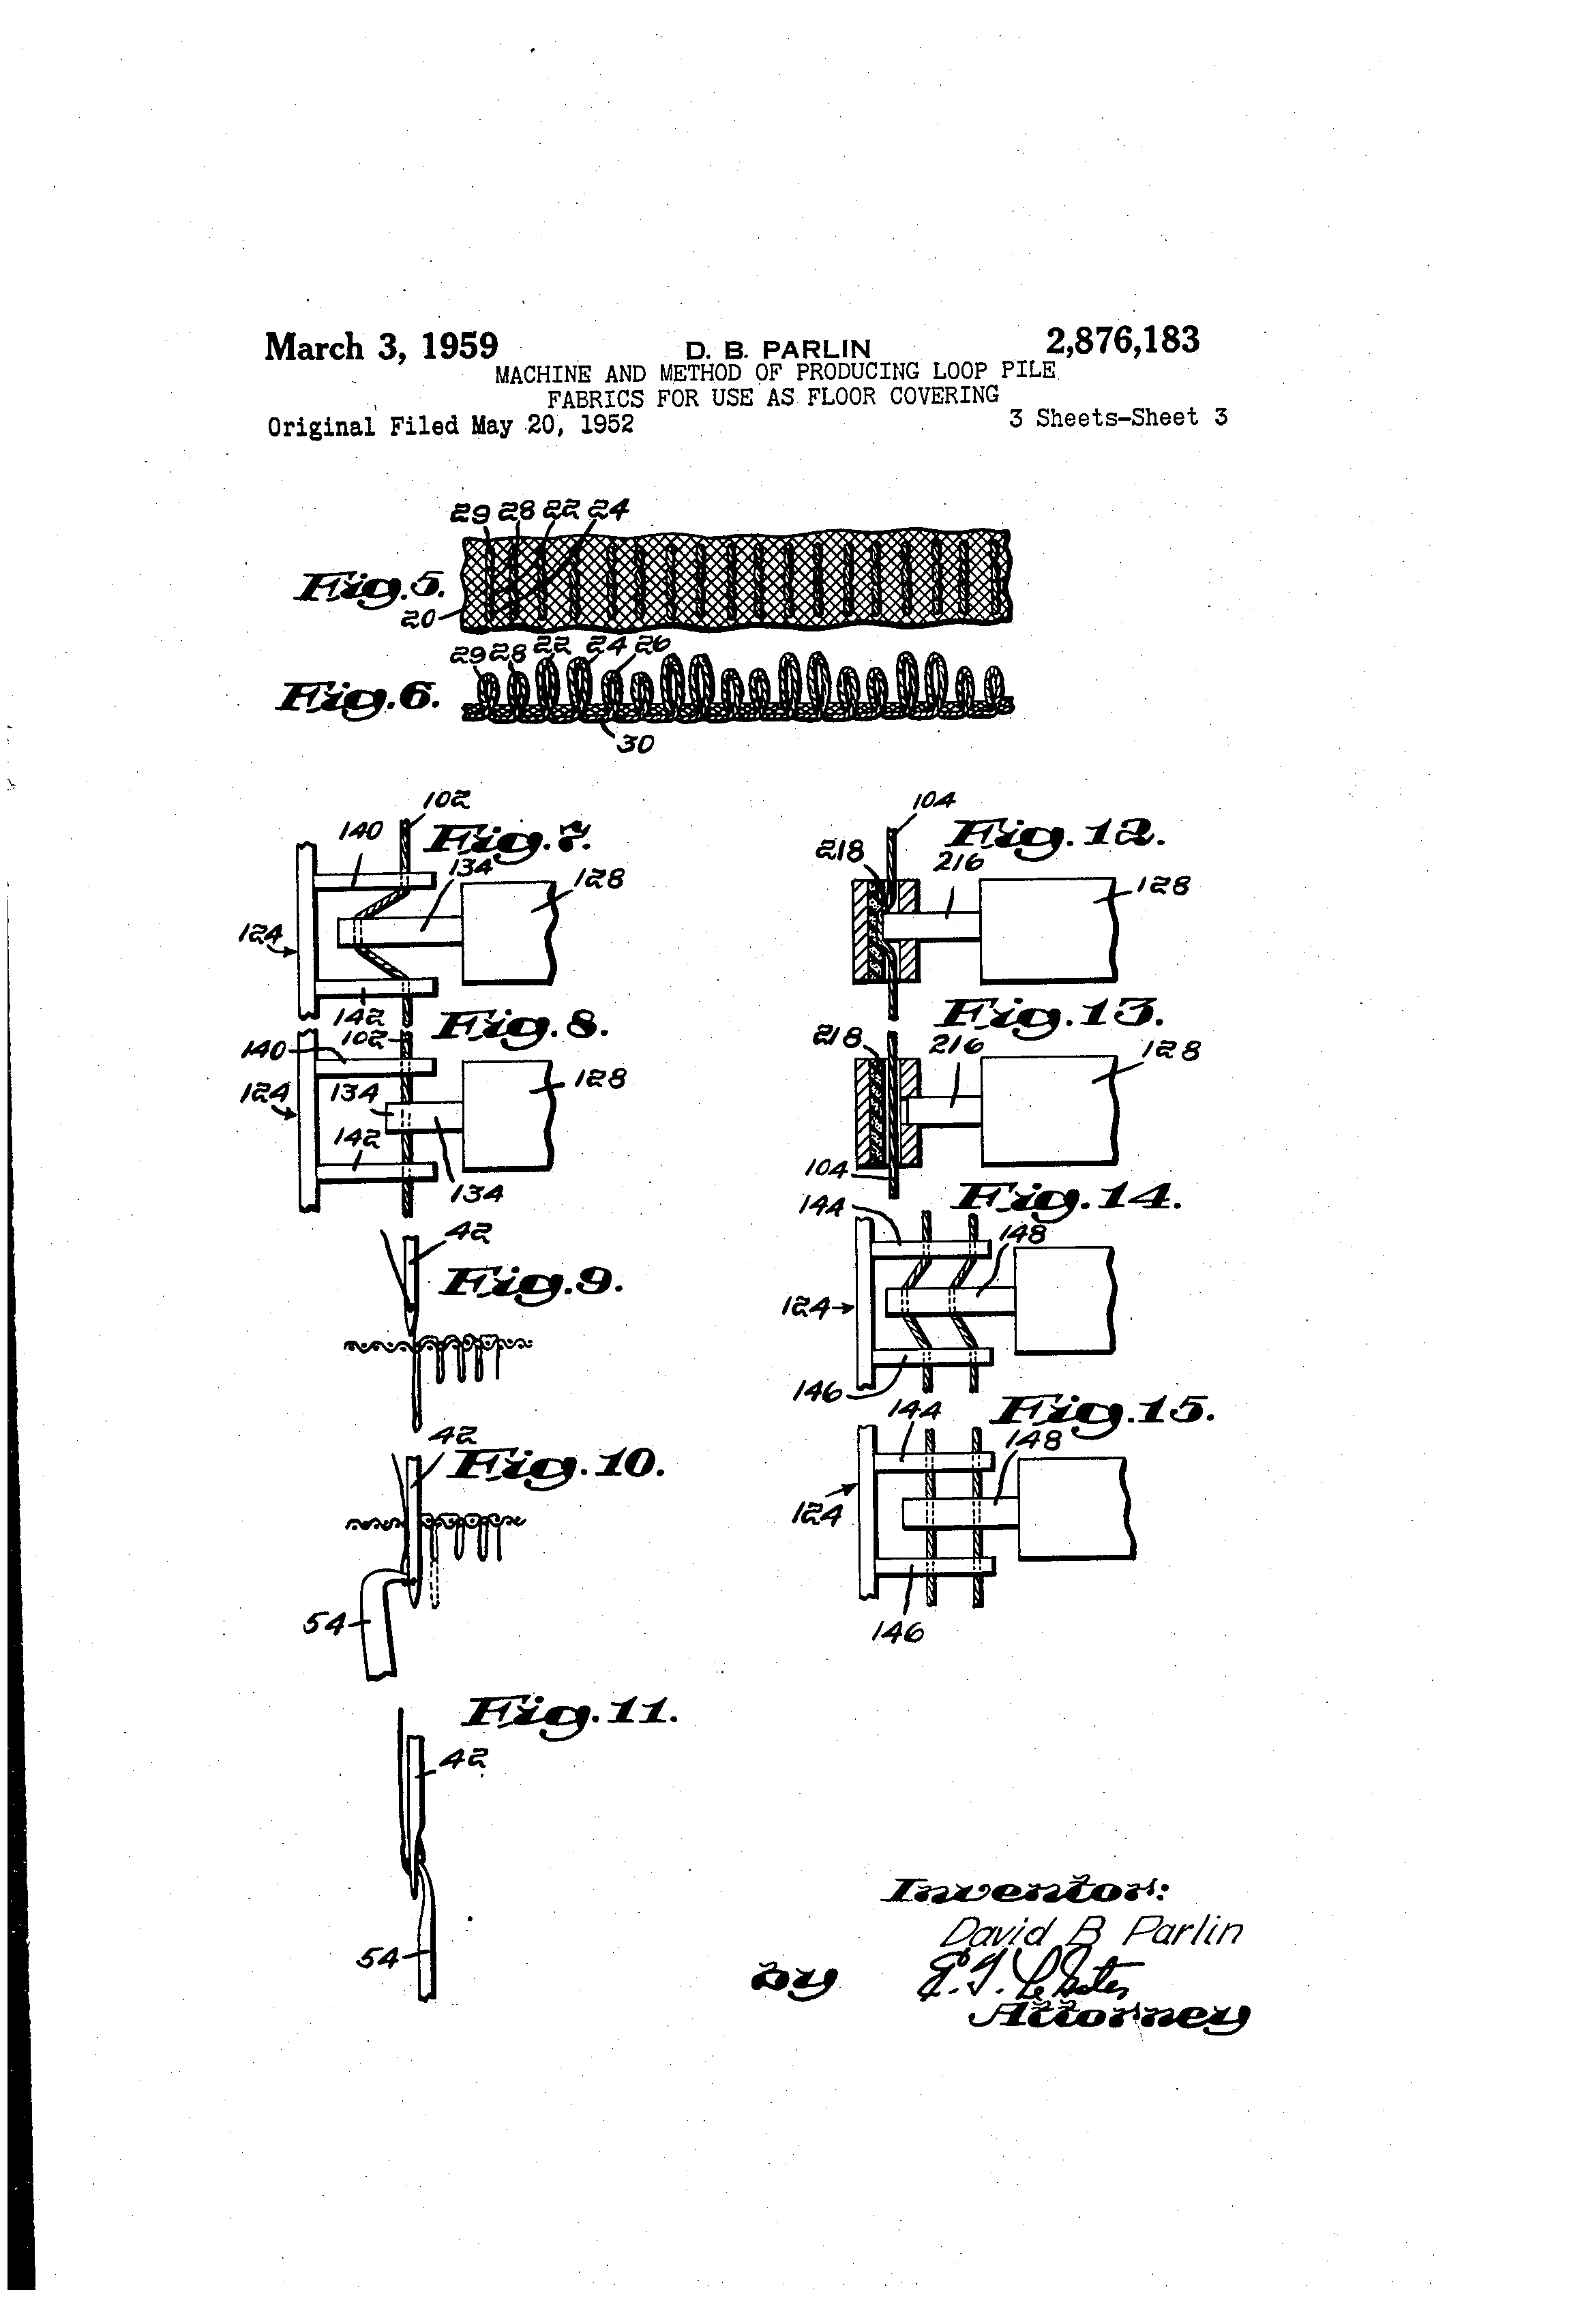 Patent Us2876183 Machine And Method Of Producing Loop Pile Fabrics 130 Looper 96 Wiring Diagram Drawing